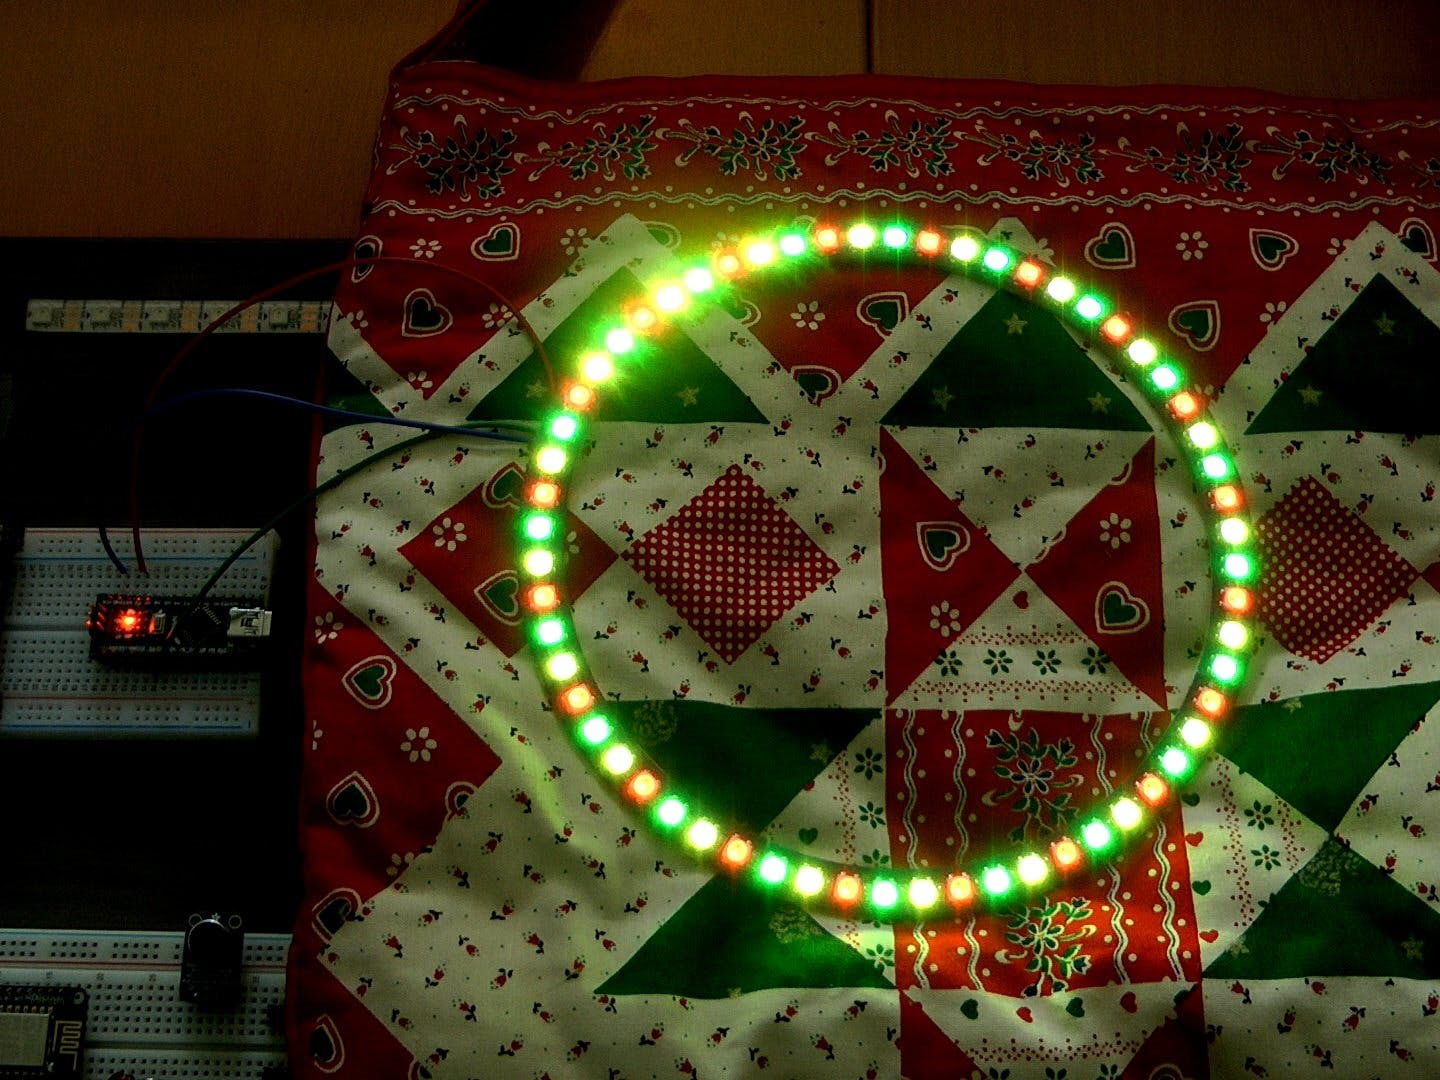 NeoPixel Christmas (Color) Animation